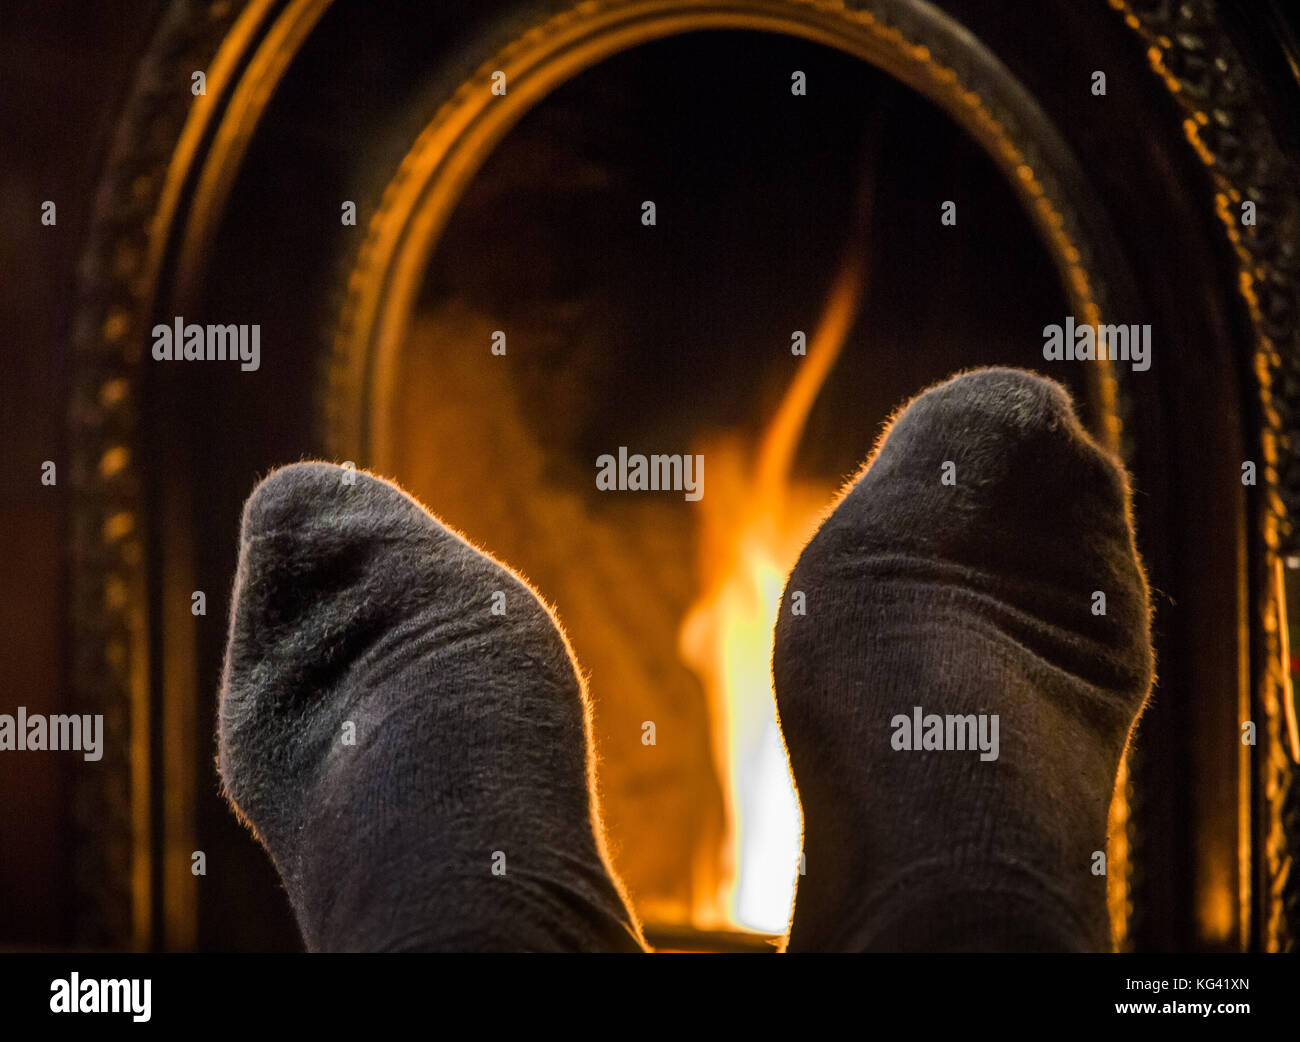 Warming feet by a cosy fireside. - Stock Image